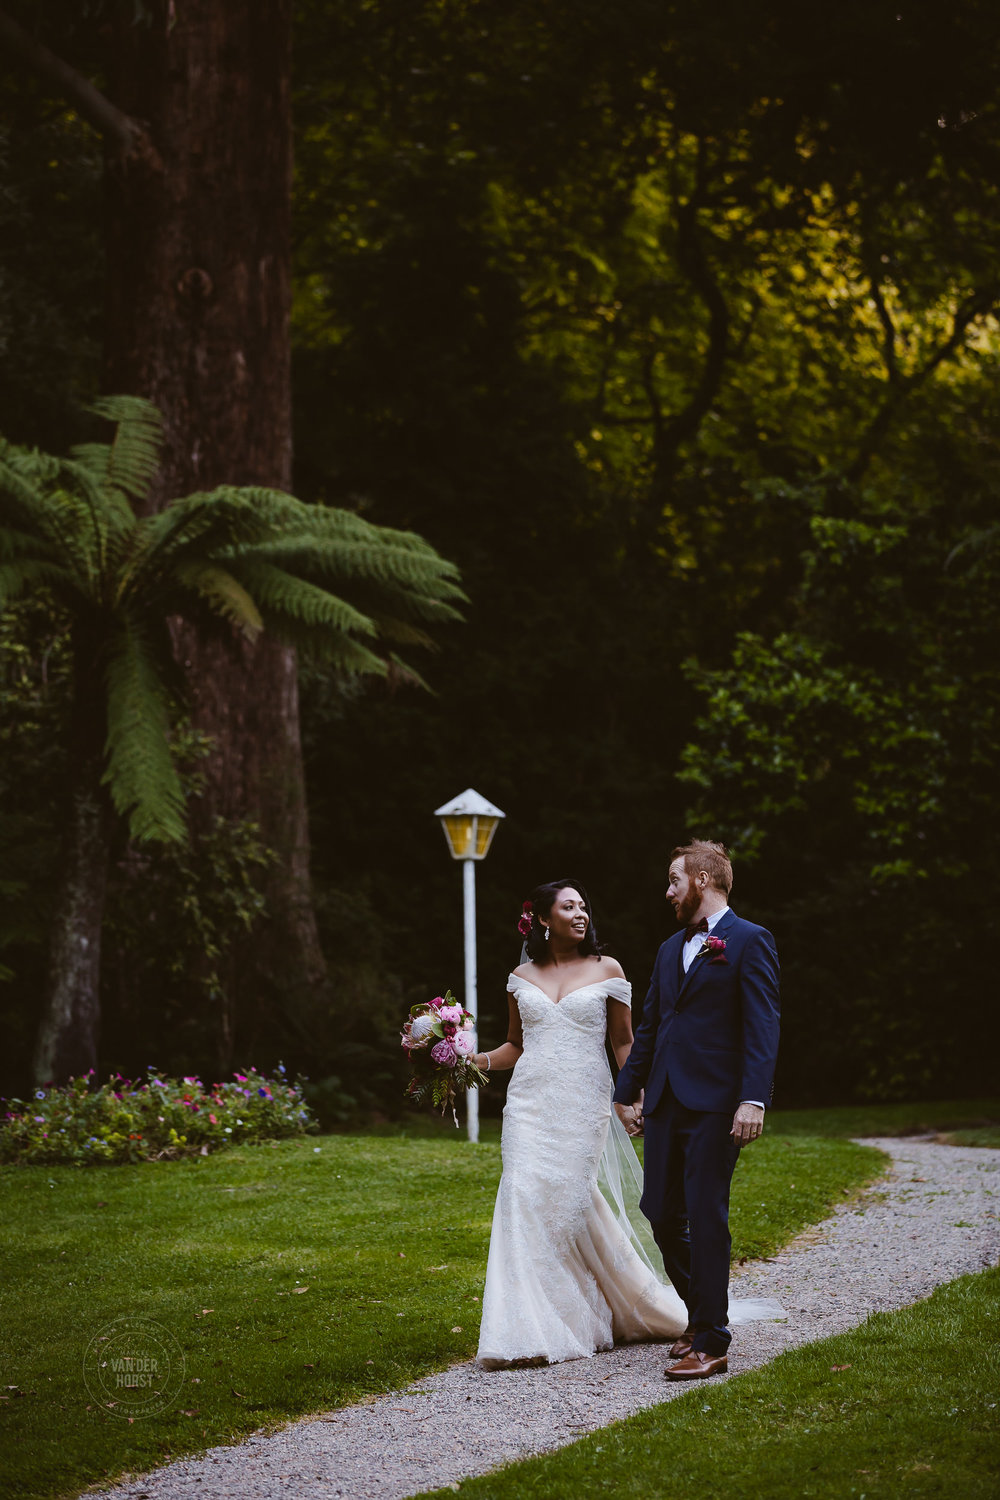 Melbourne-Wedding-Photographer-Tatra-1082.jpg